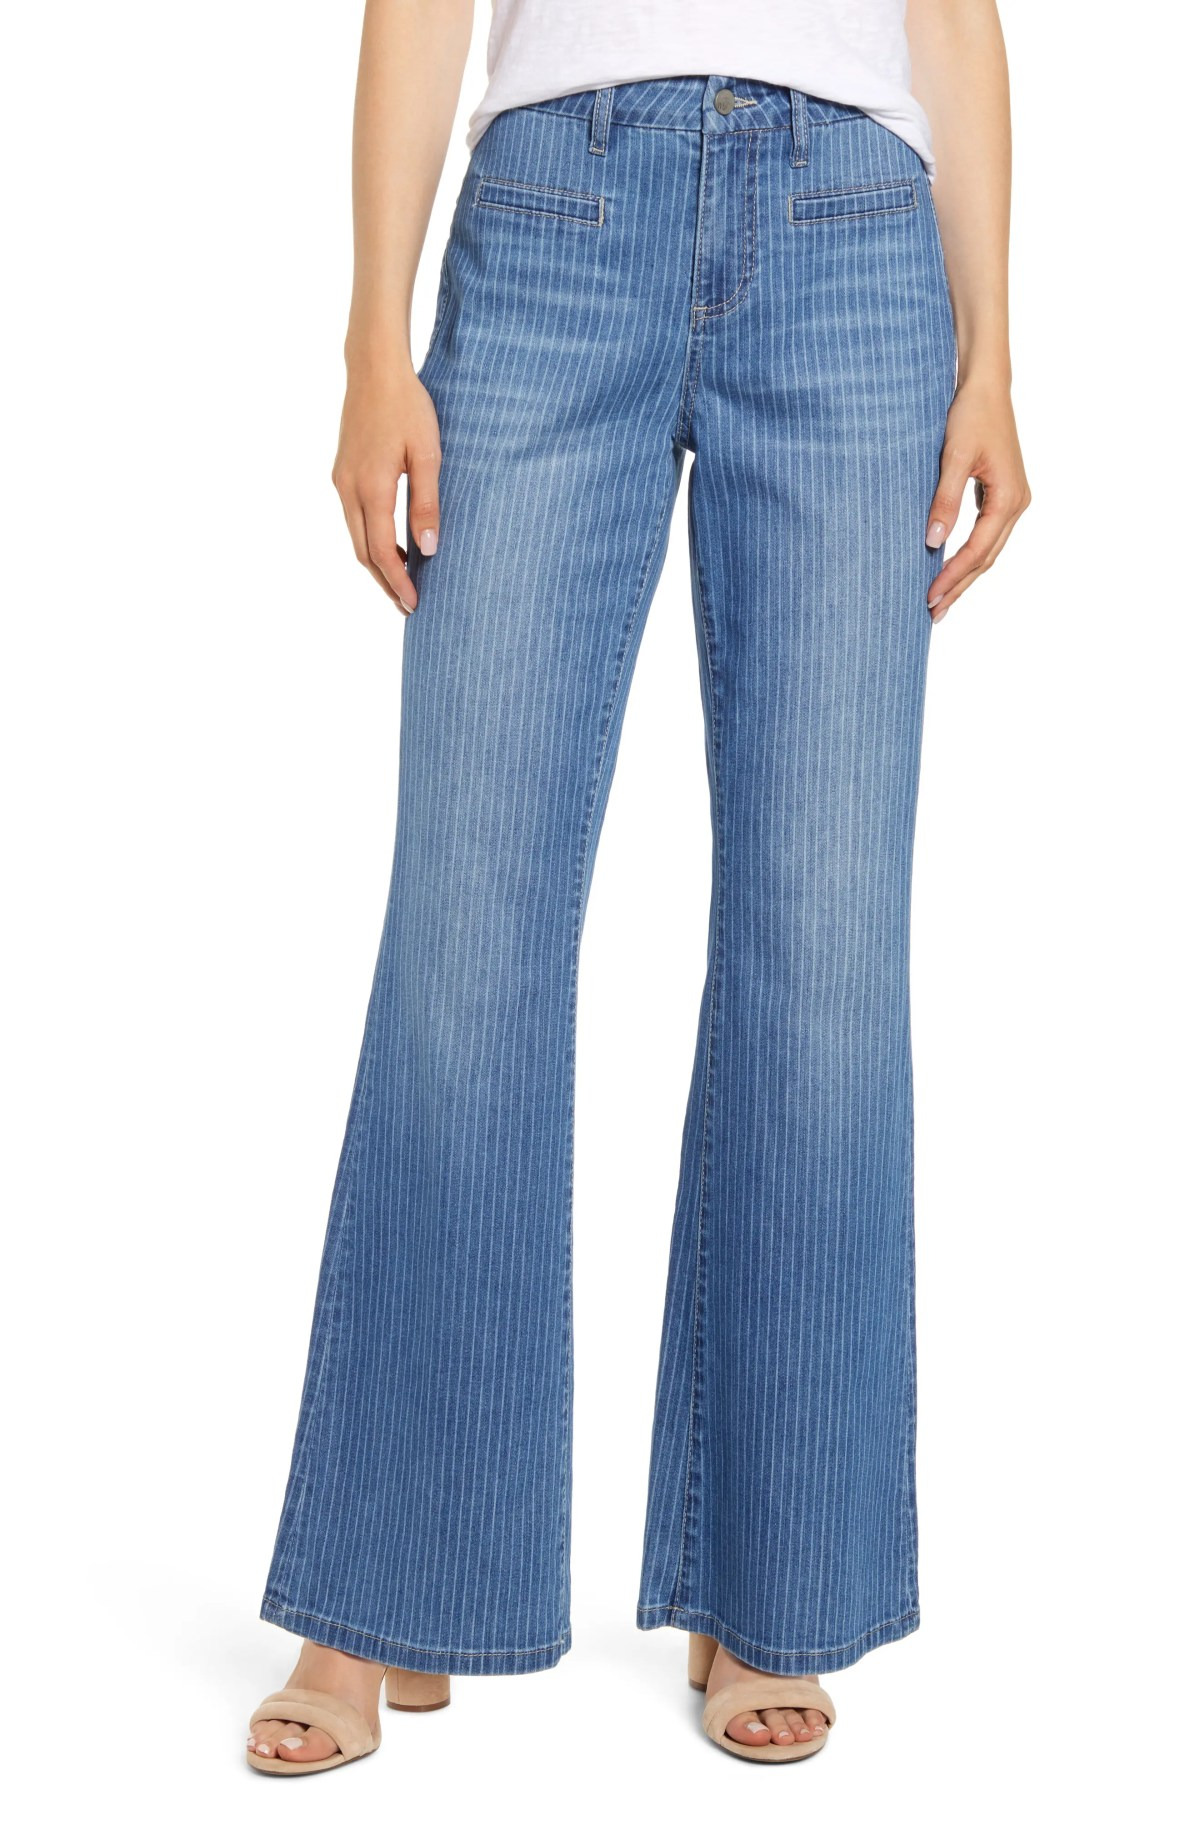 WASH LAB Pinstripe Flare Leg Jeans, Main, color, BLUE SKY STRIPE